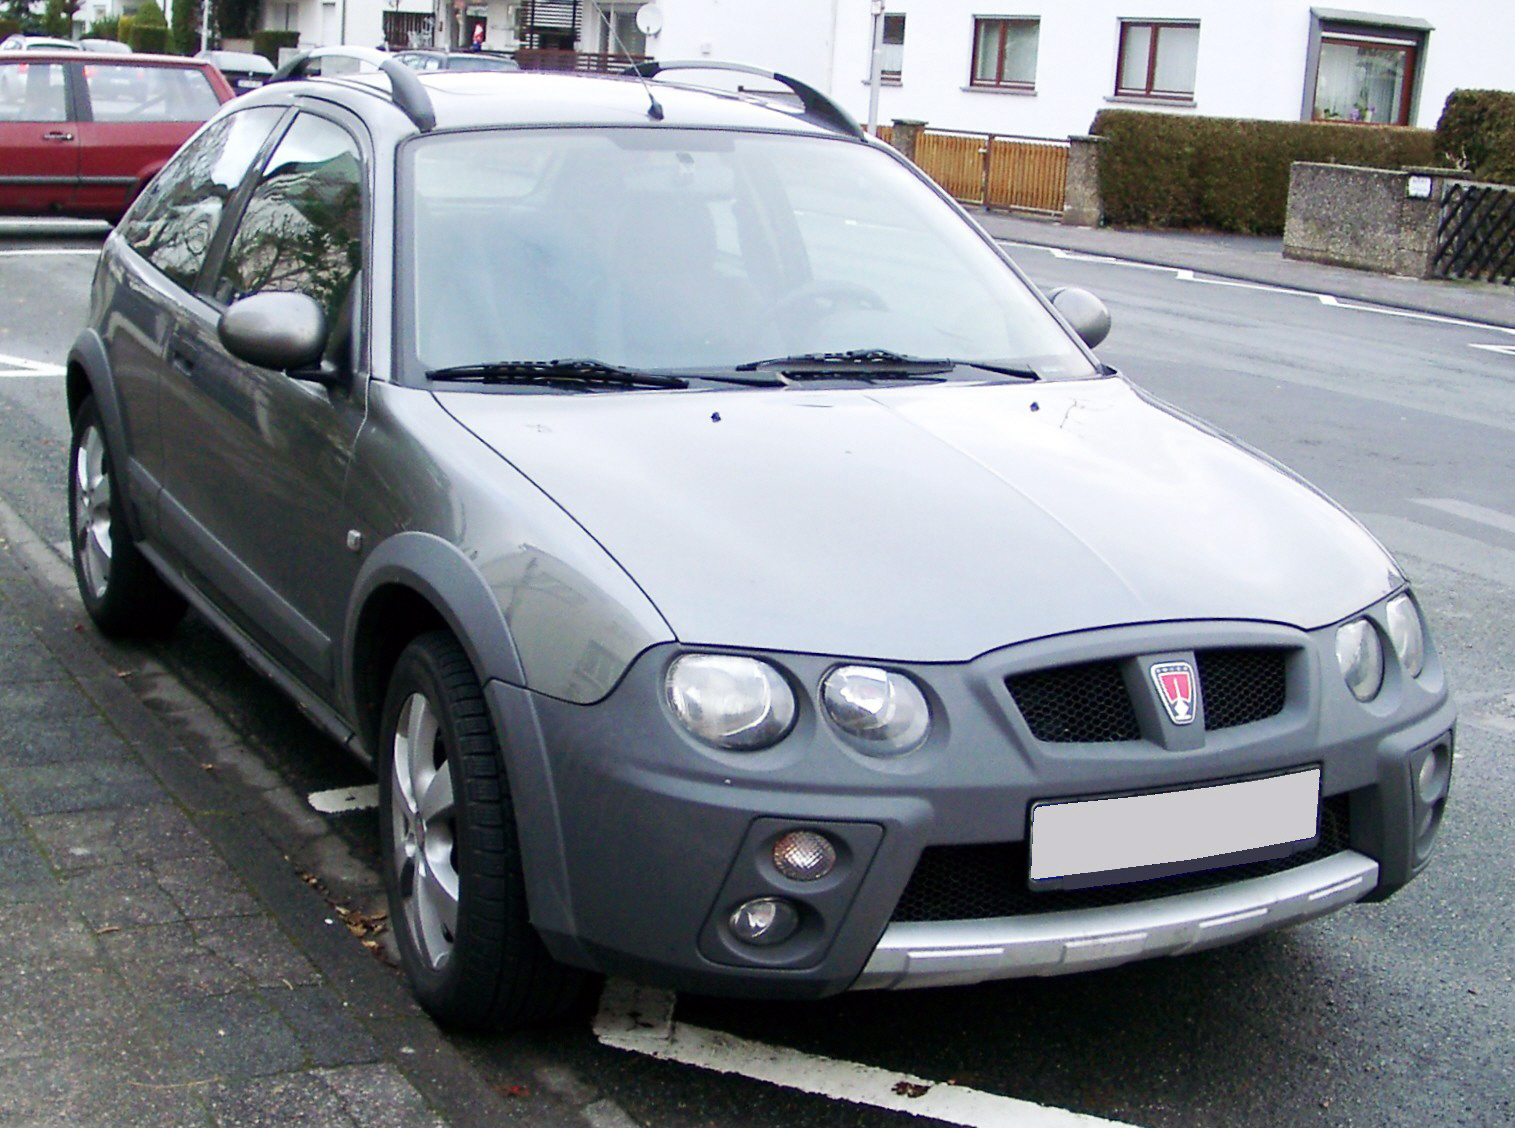 2008 Rover Streetwise #4